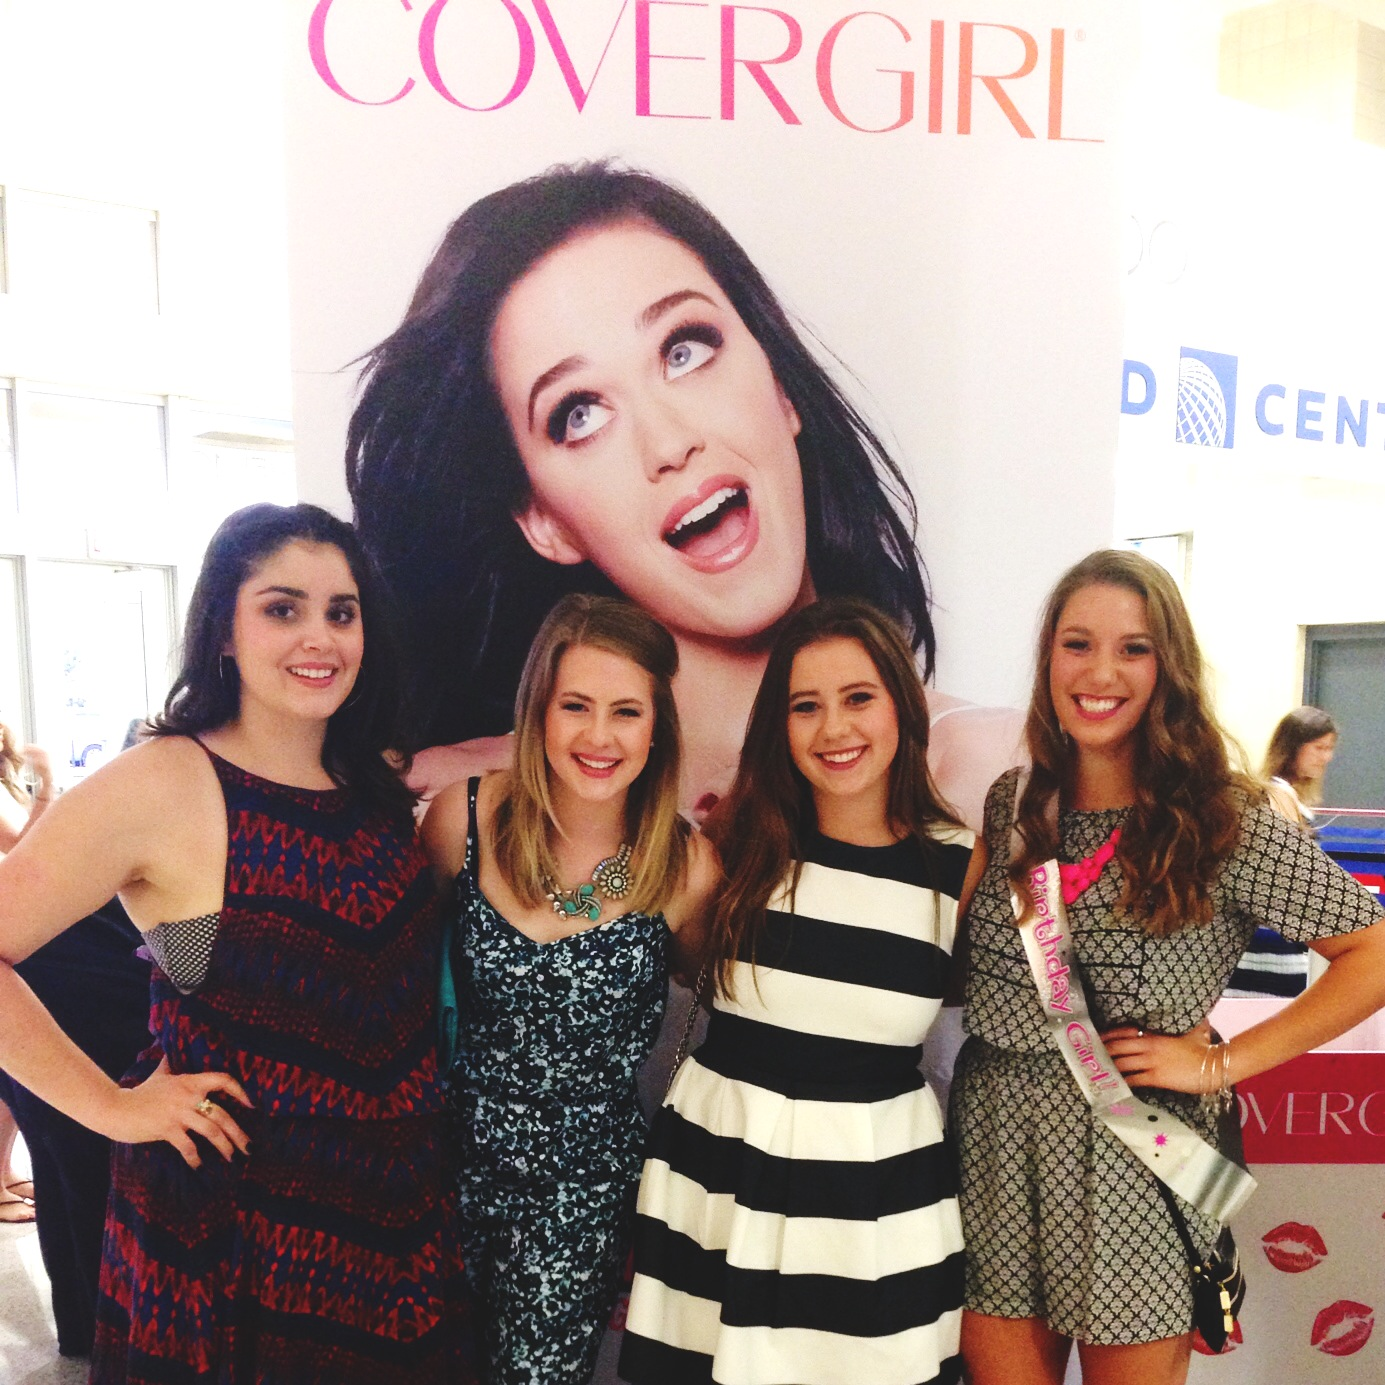 There was a lot of CoverGirl stuff all around but I wasn't complaining!